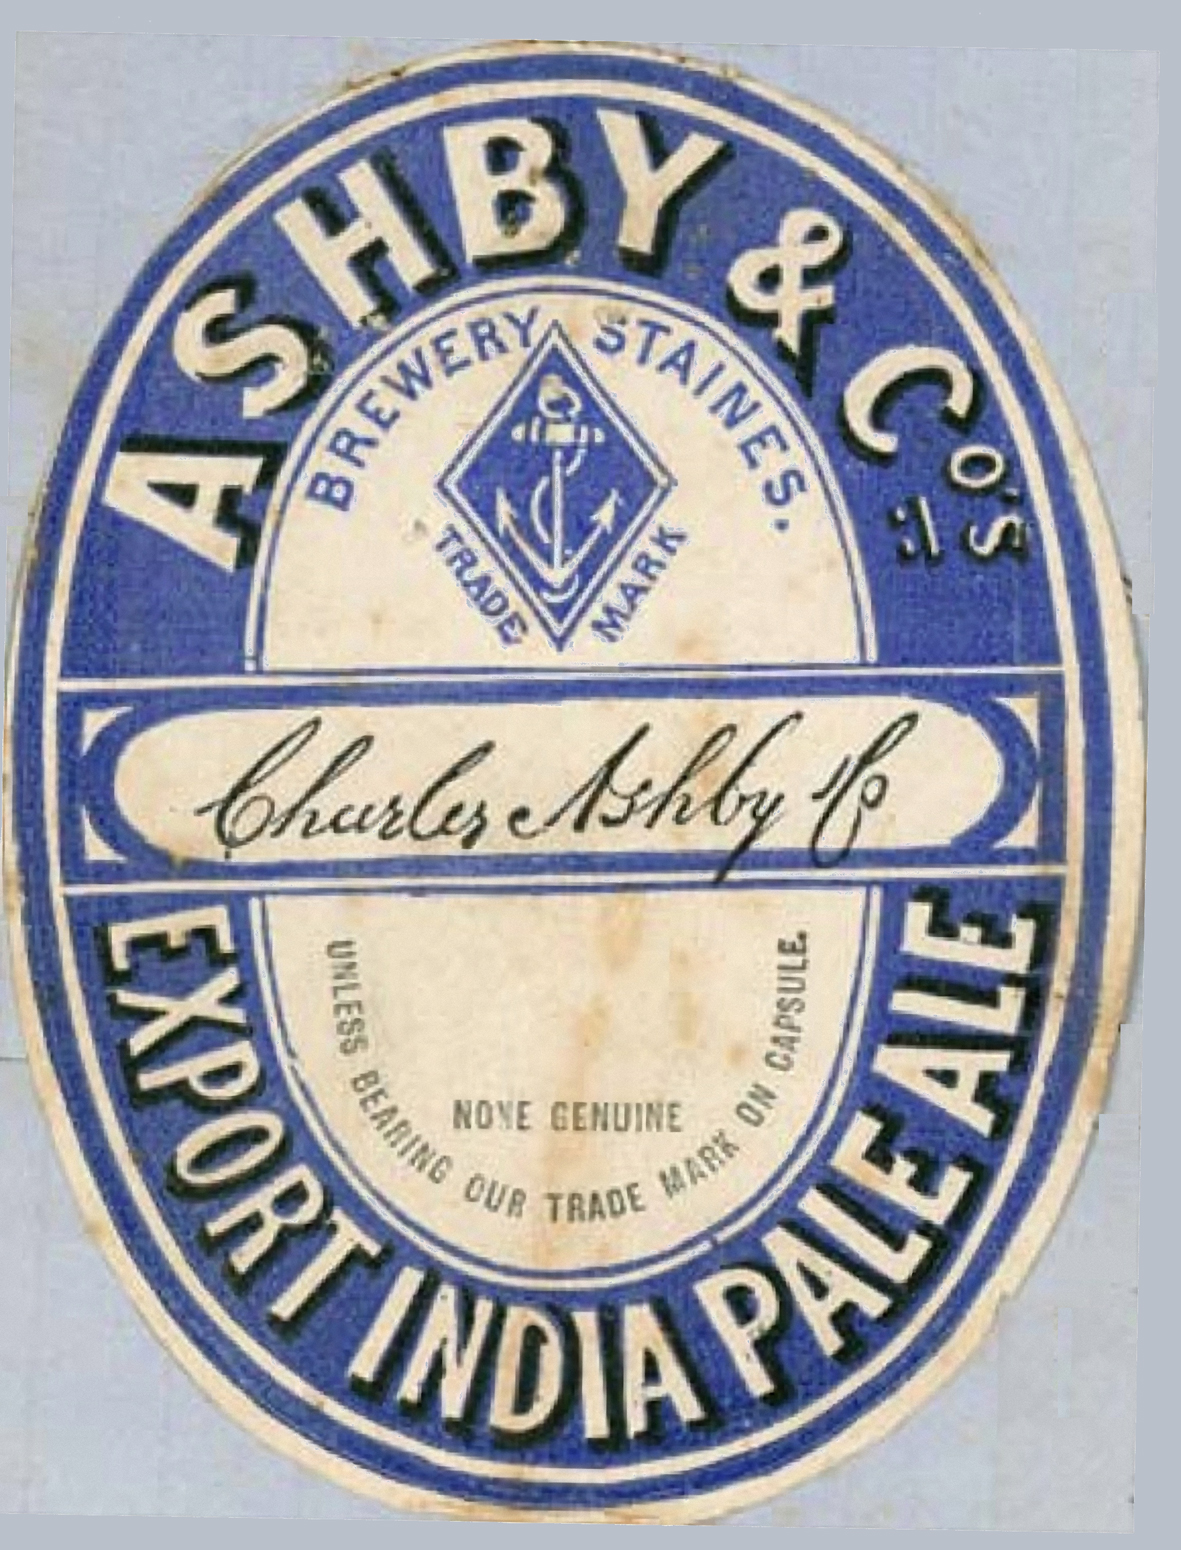 The Earliest Use Of The Term India Pale Ale Was In Australia Zythophile